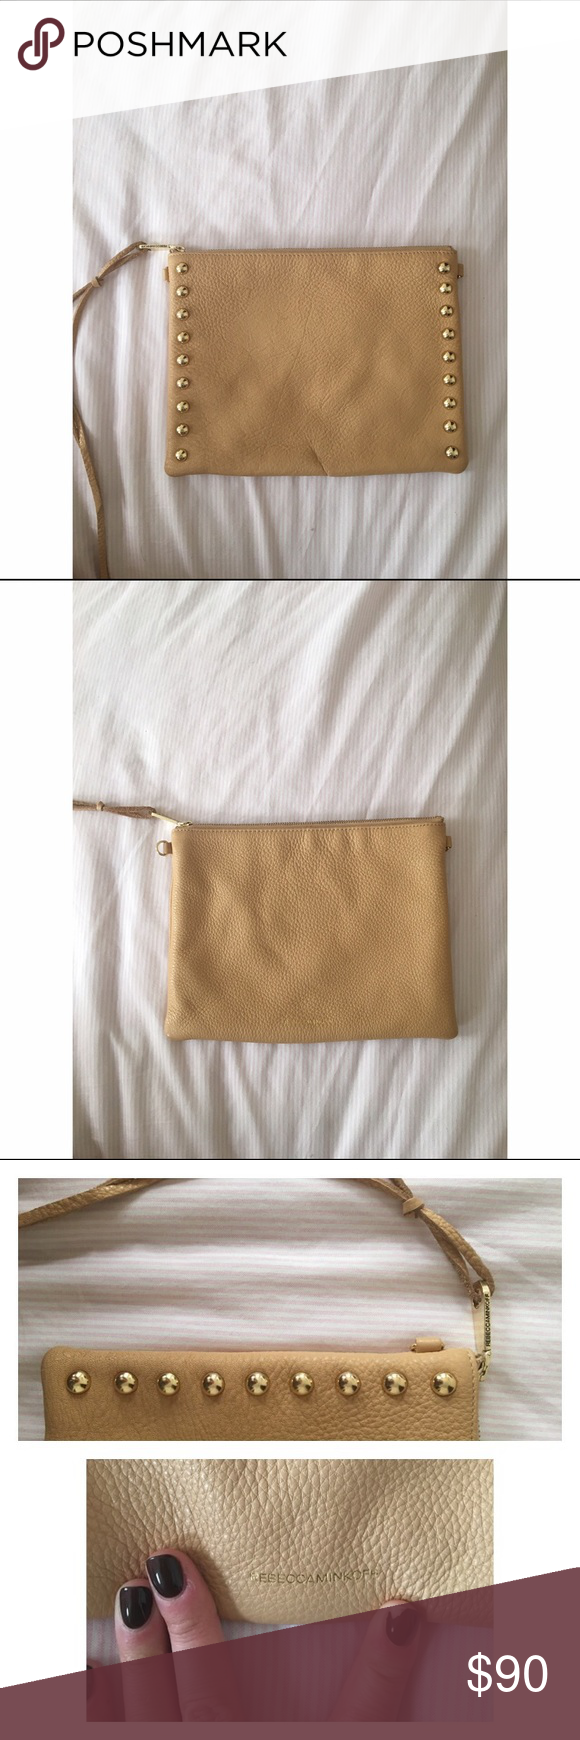 Rebecca Minkoff Beige Soft Studded Clutch Great condition!! Super cute designer clutch. Gold studs. Purchased at Saks. Only used 2 times. Rebecca Minkoff Bags Clutches & Wristlets